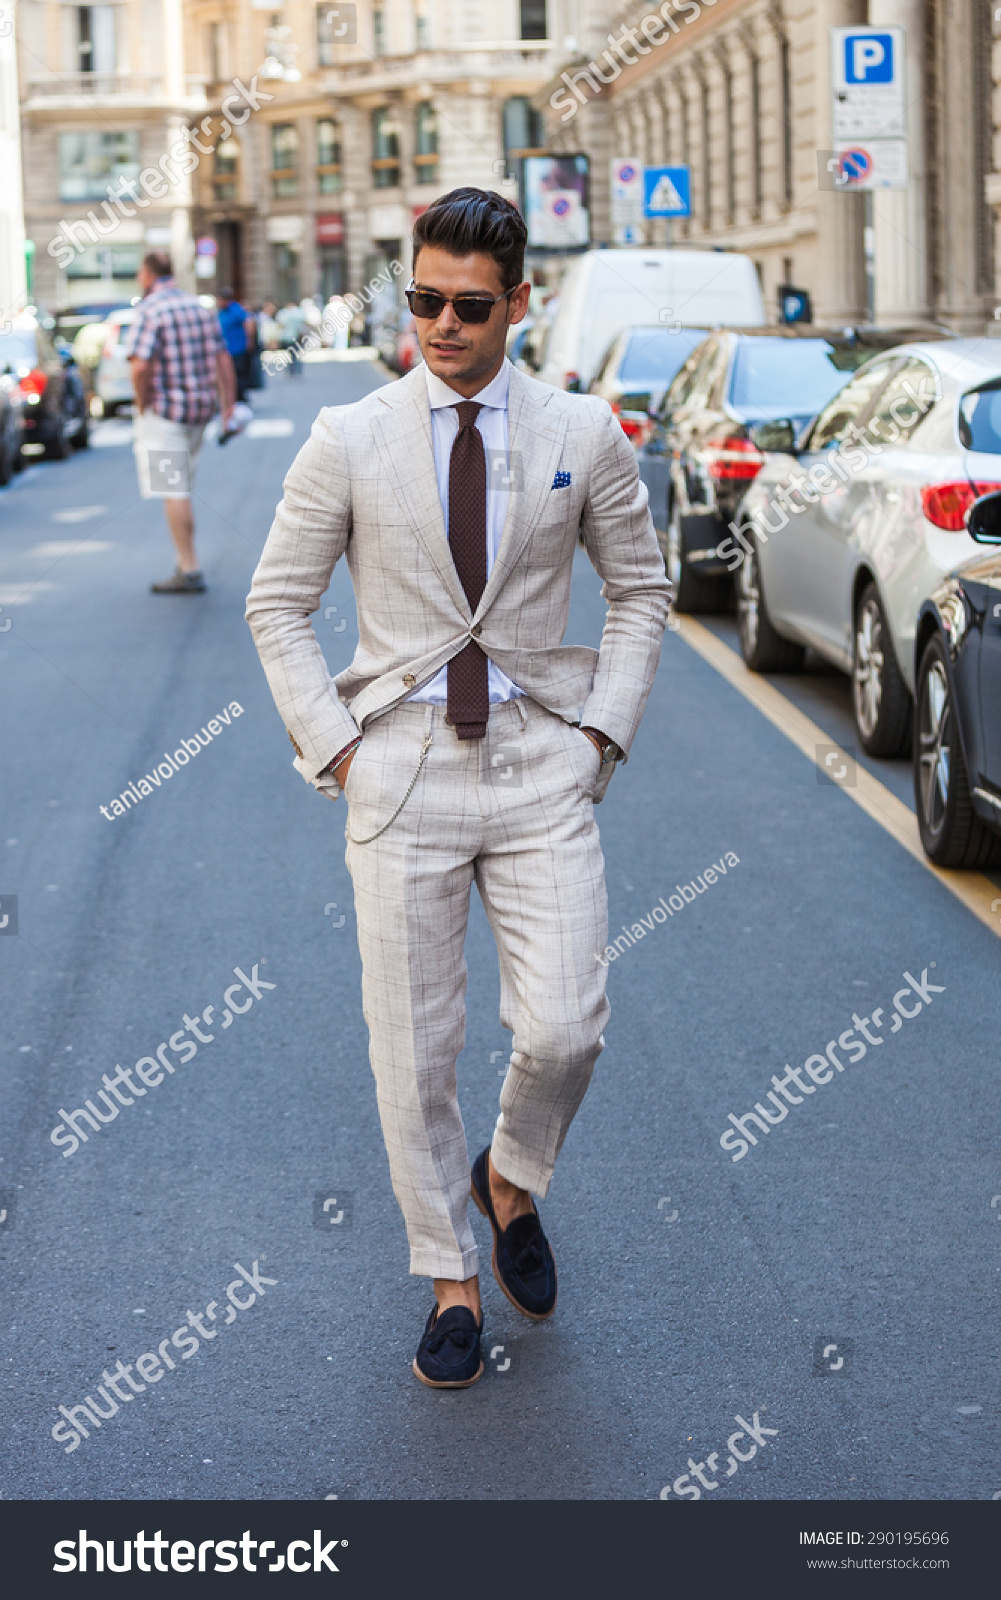 Milan Italy 21 June 2015 Street Stock Photo 290195696